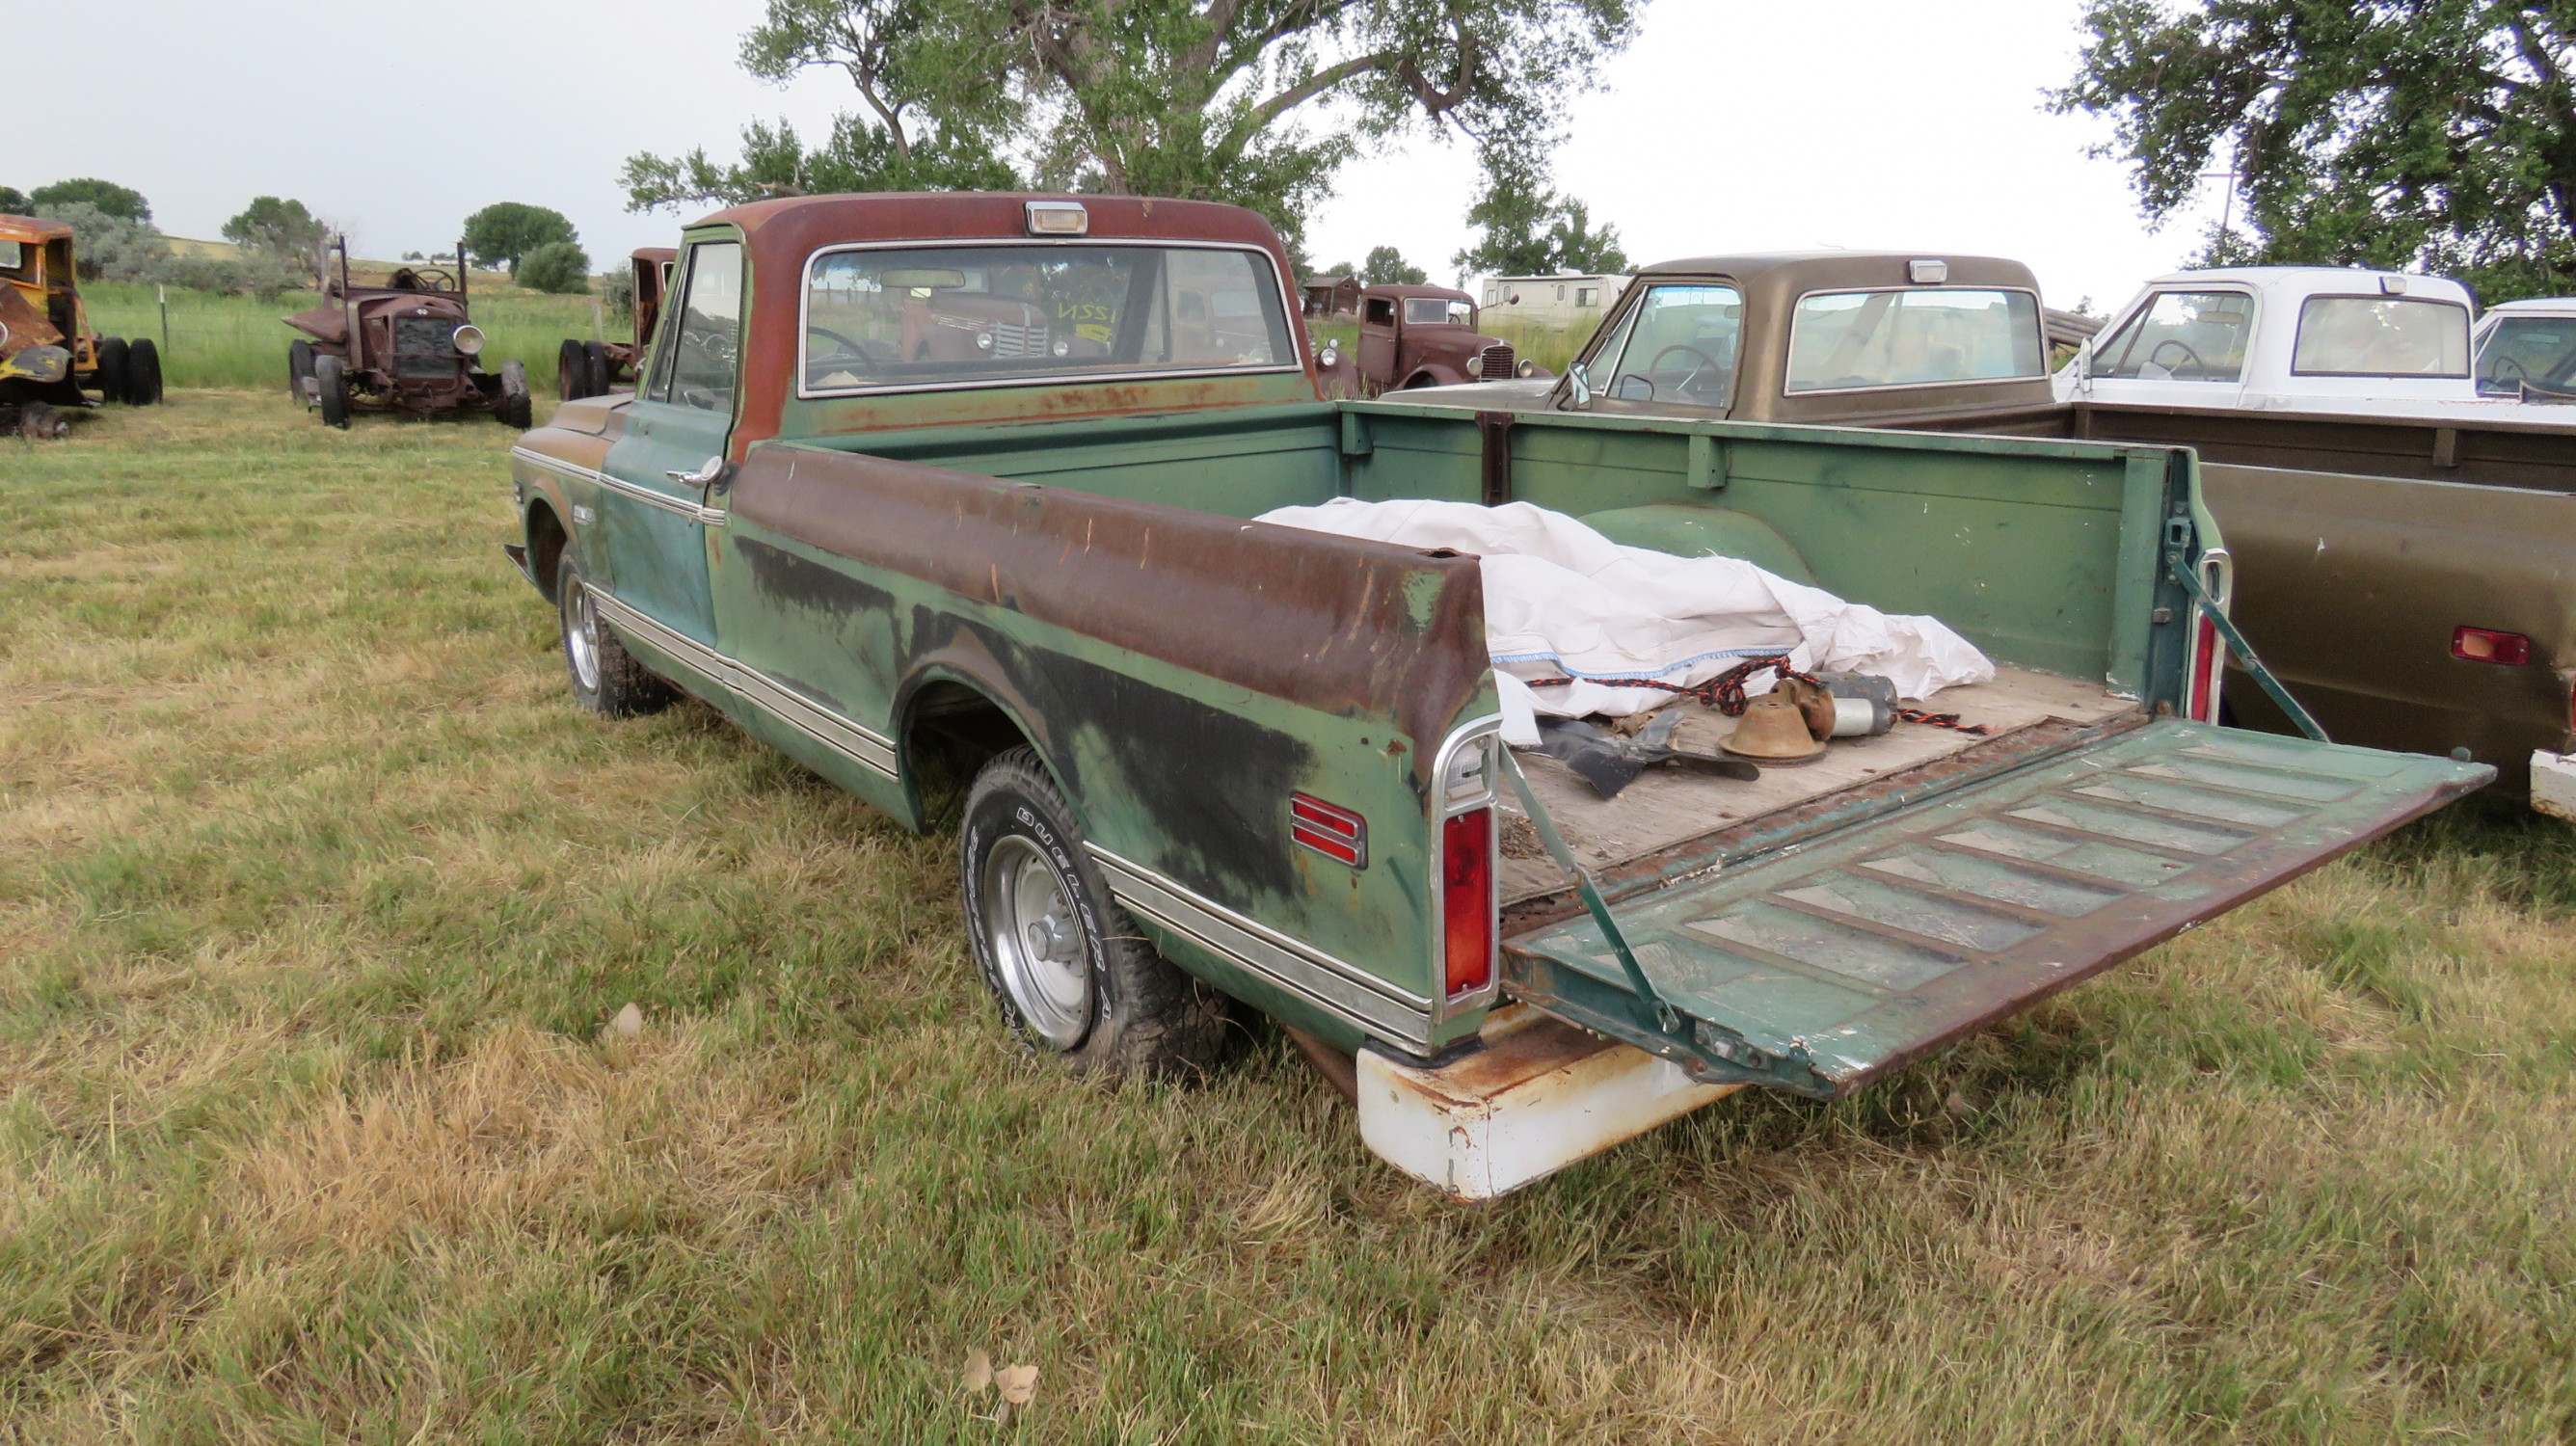 1972 CHEVROLET PICKUP - Image 3